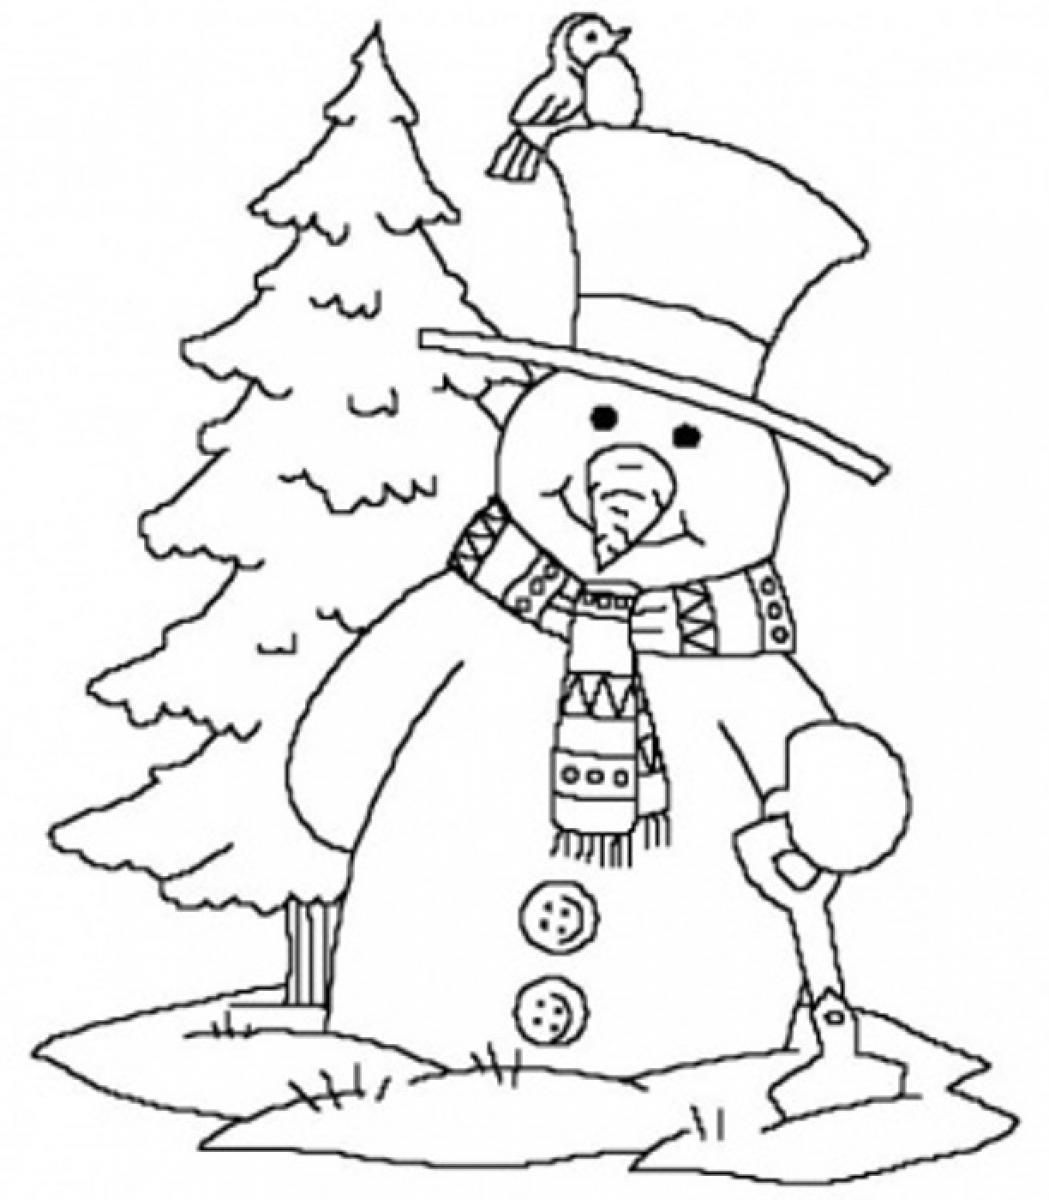 whether it is winter or not winter theme coloring pages would be real fun to - Winter Coloring Pages Printable Free 2